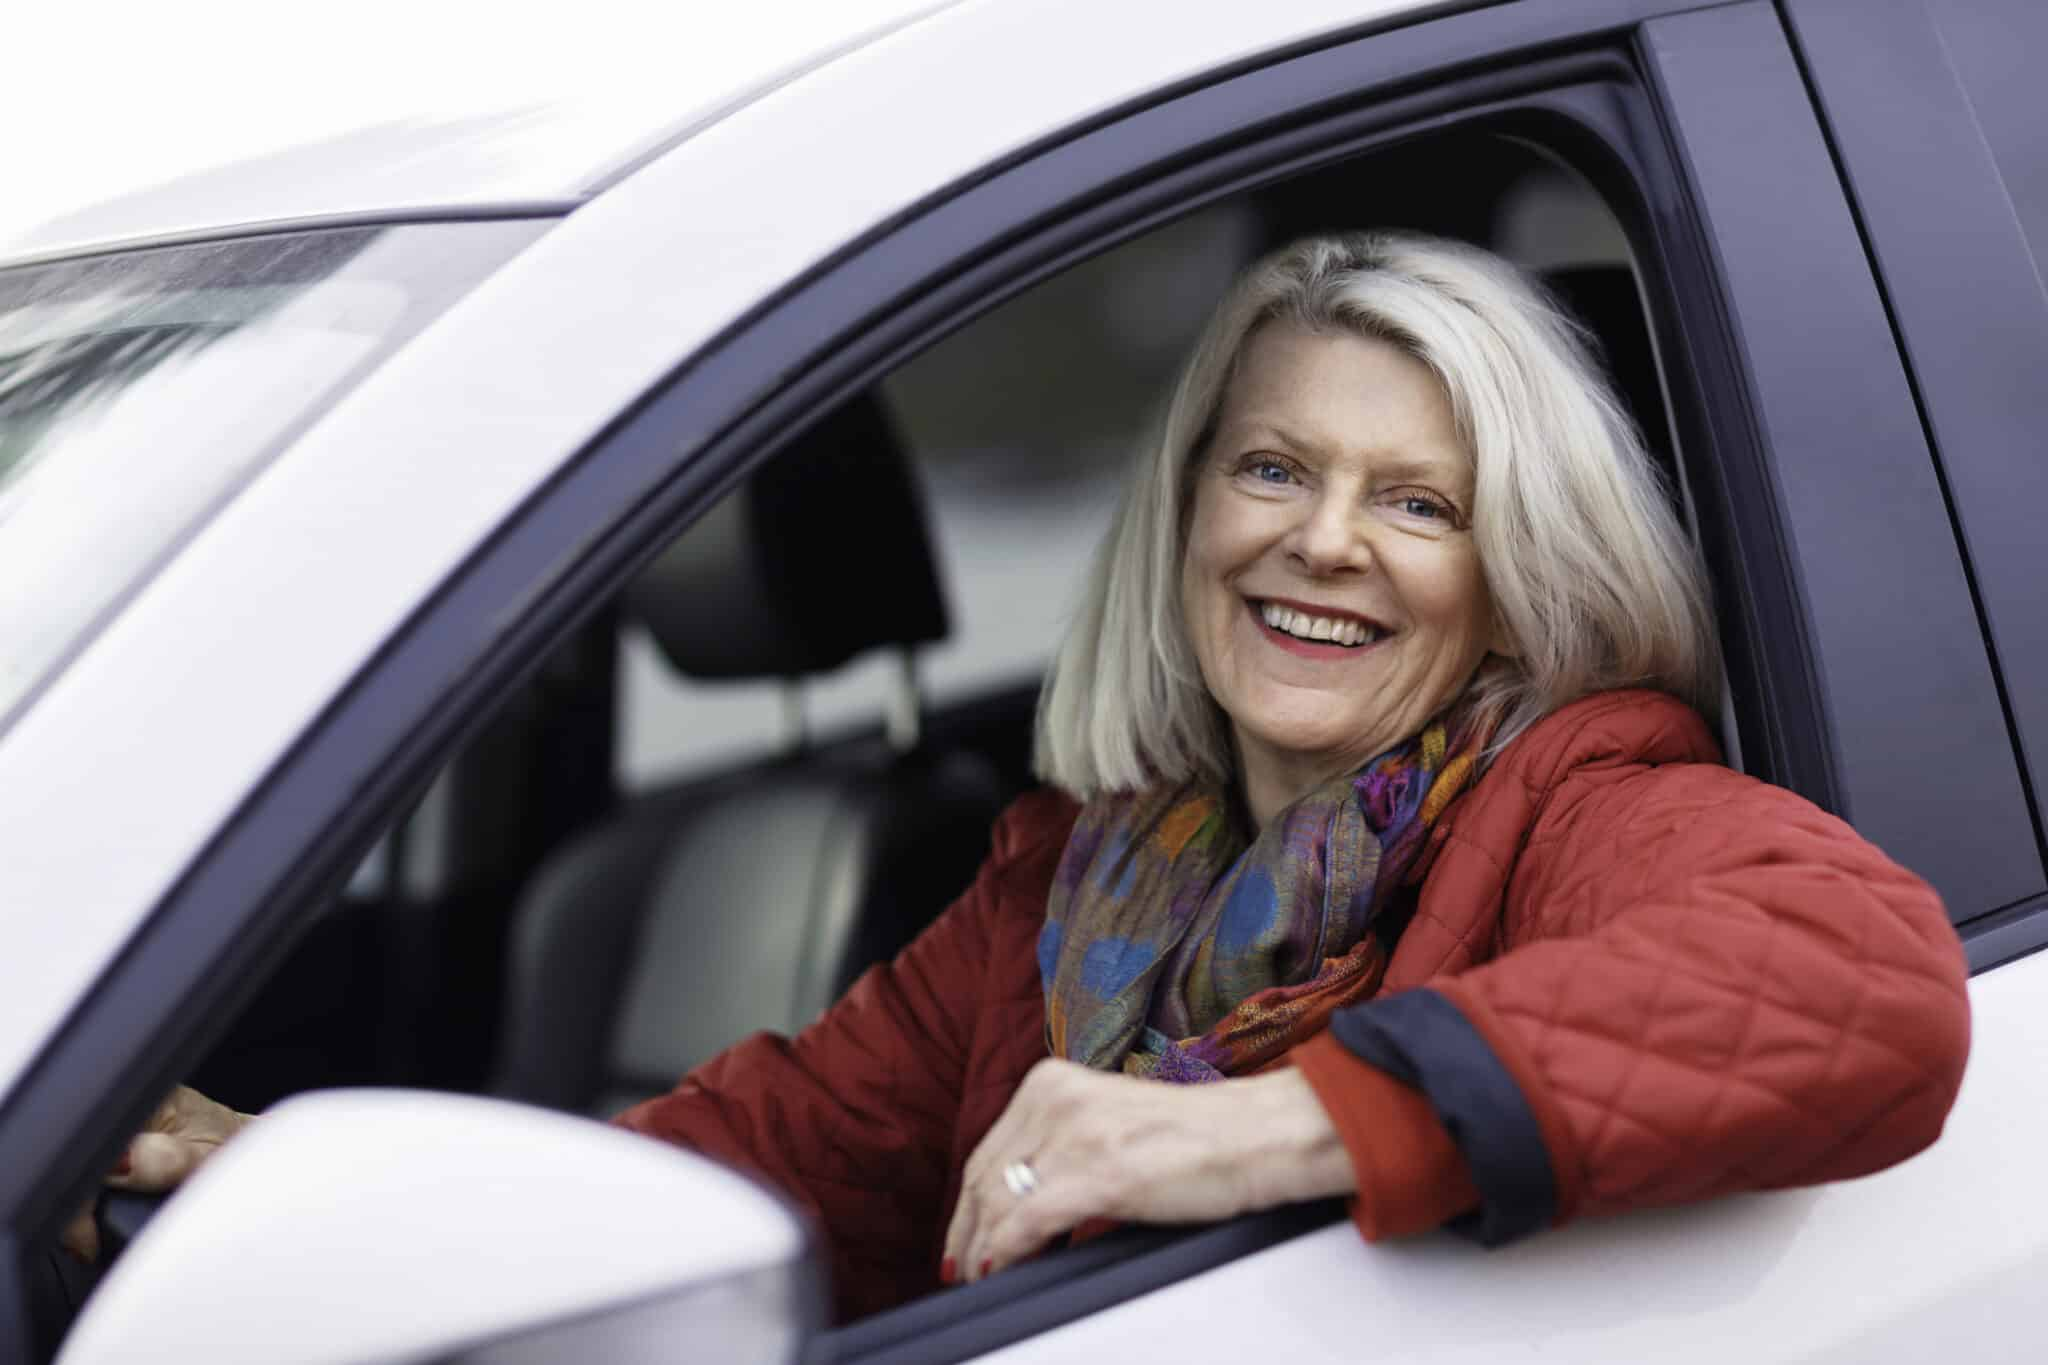 A Senior Woman Sitting In Her Car And Smiling, Facing The Camera.